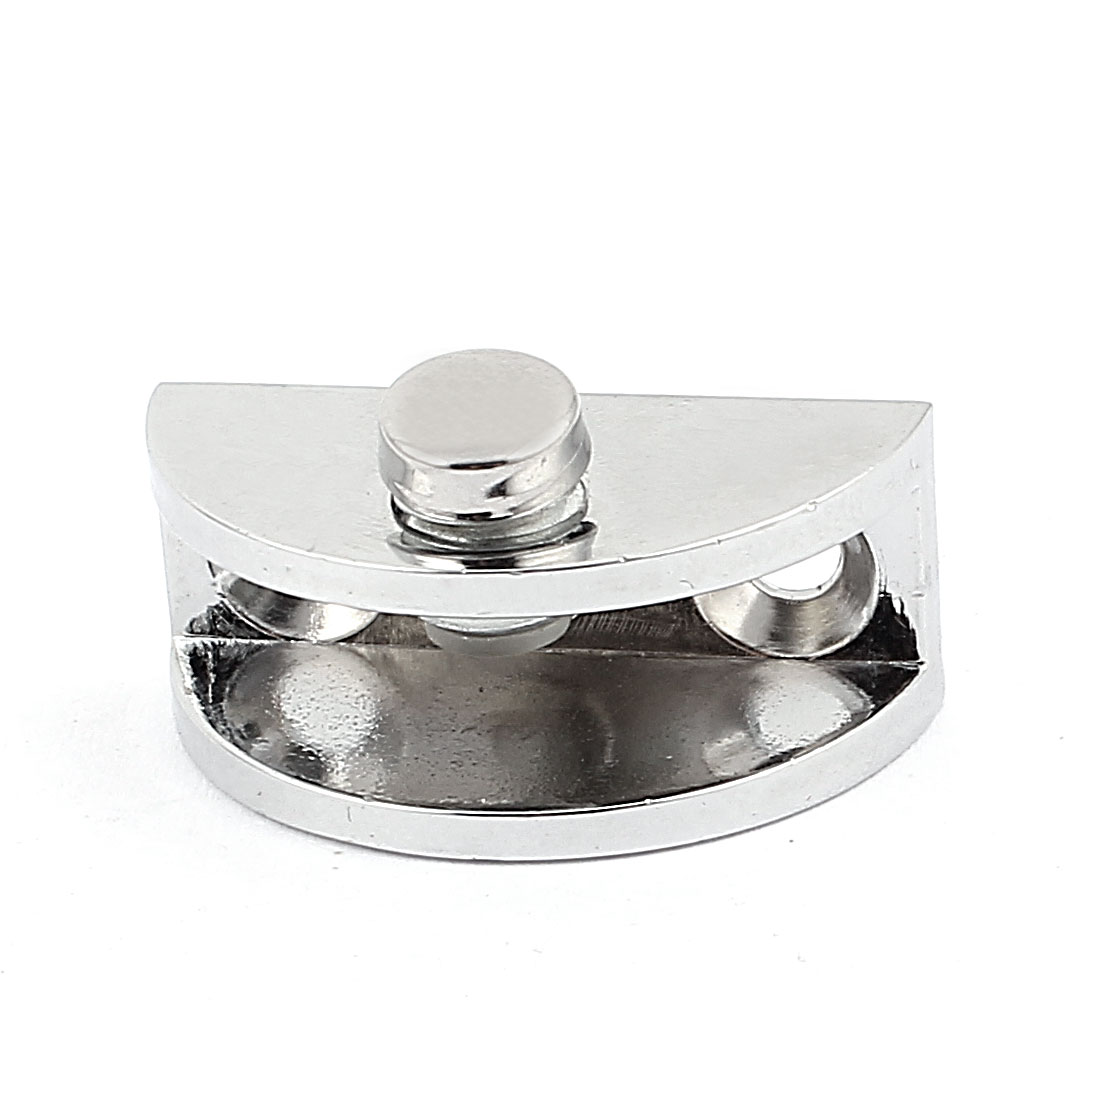 Shelf Bracket Metal Adjustable Glass Clamp Fitted Clip Silver Tone 33mm Long